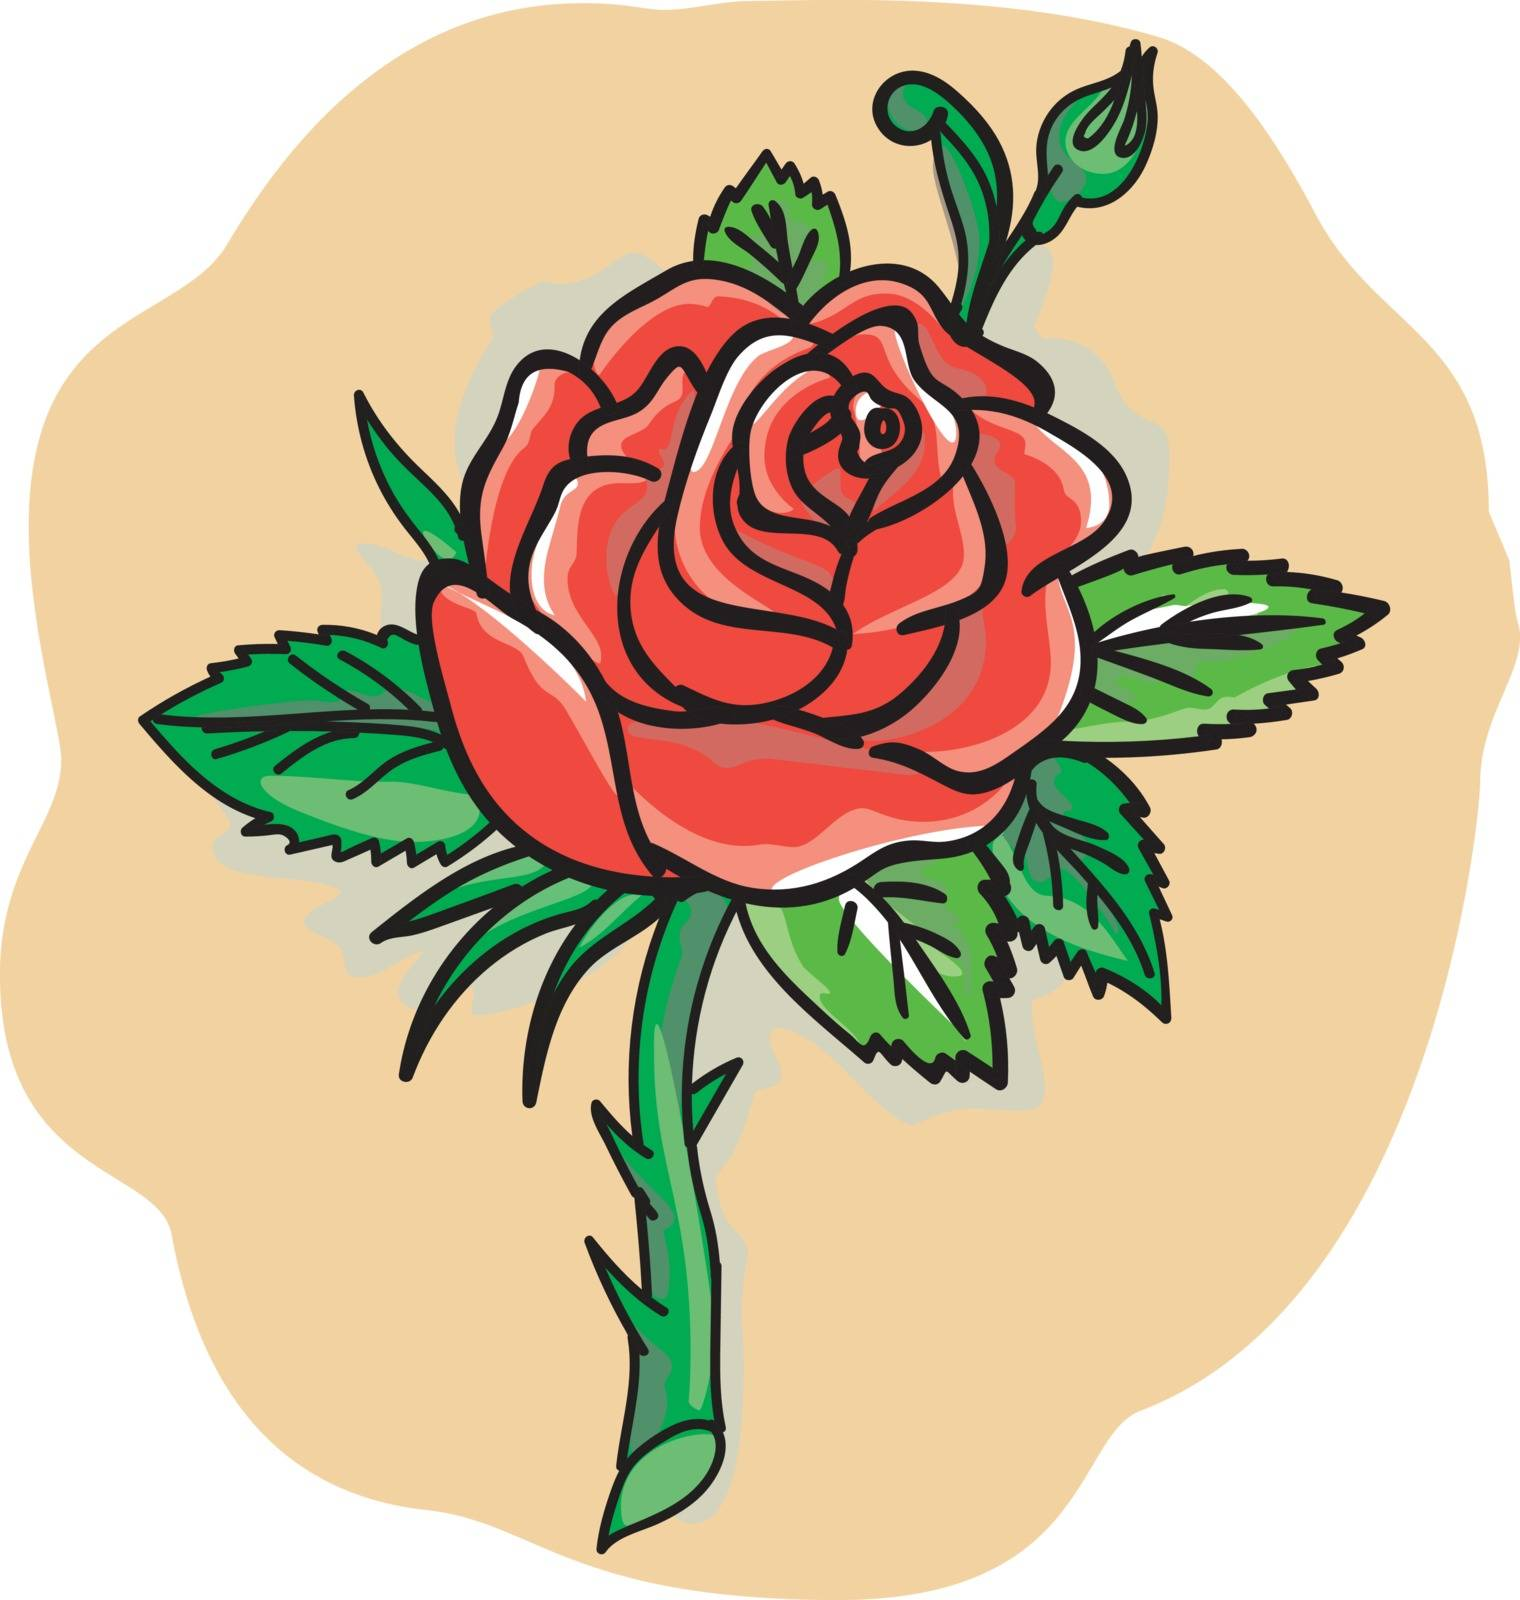 Tattoo style illustration of a red rose bud with leaves on a stem with thorns set on isolated white background.